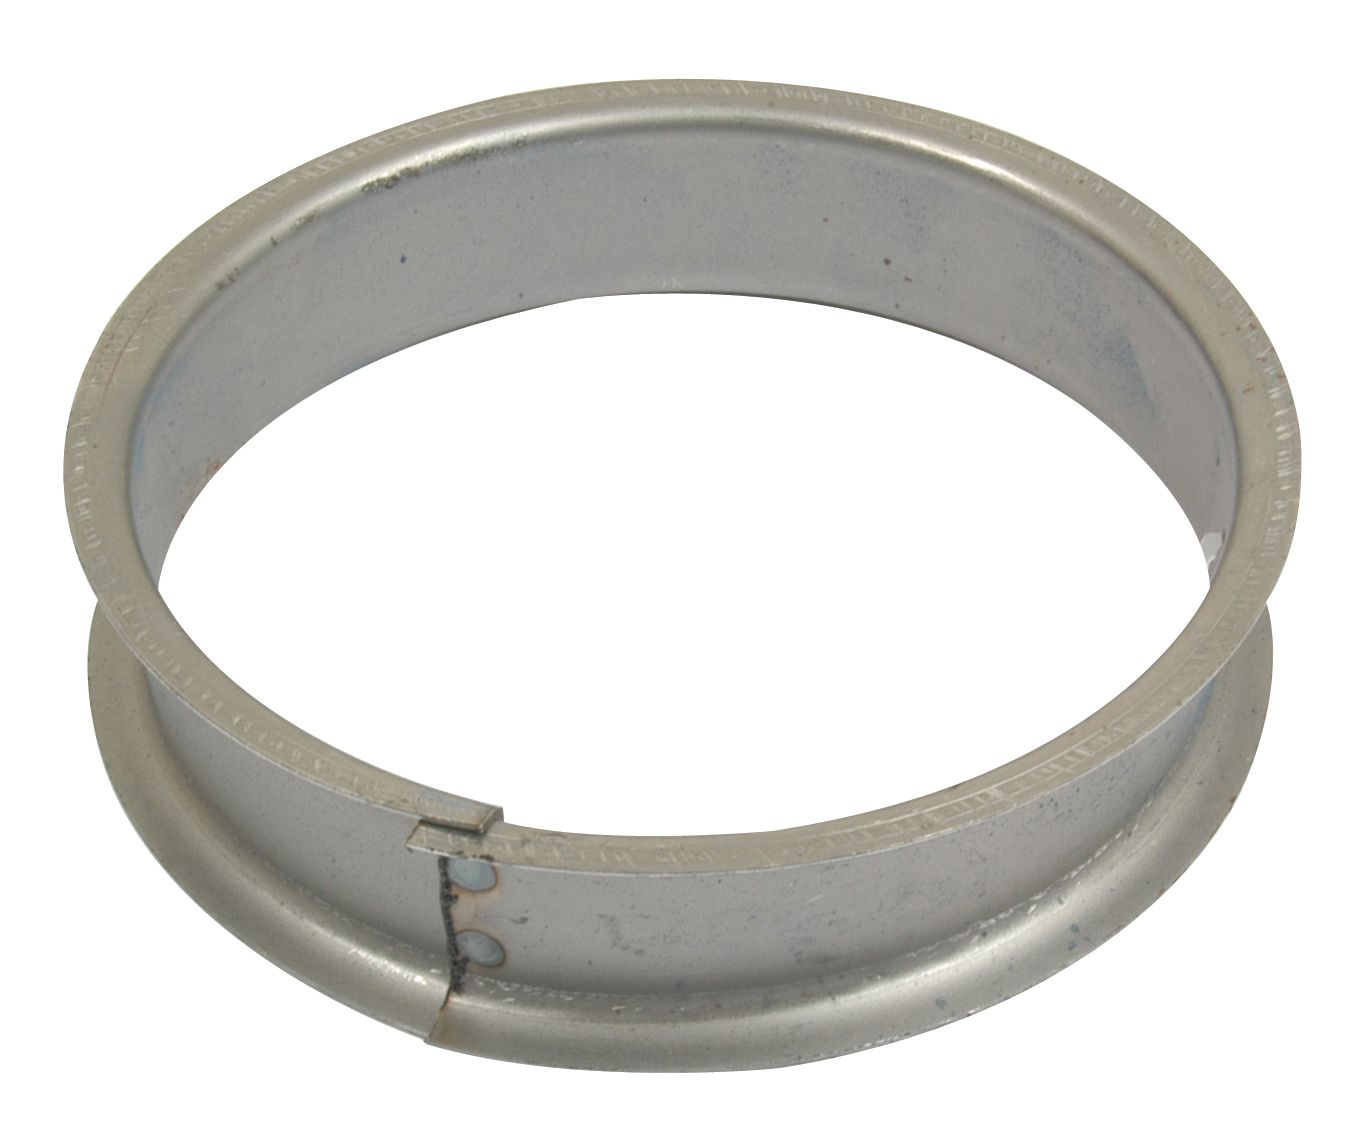 "MCCONNEL BUSH-AXLE SPACER 5"" SHAFT 59774"